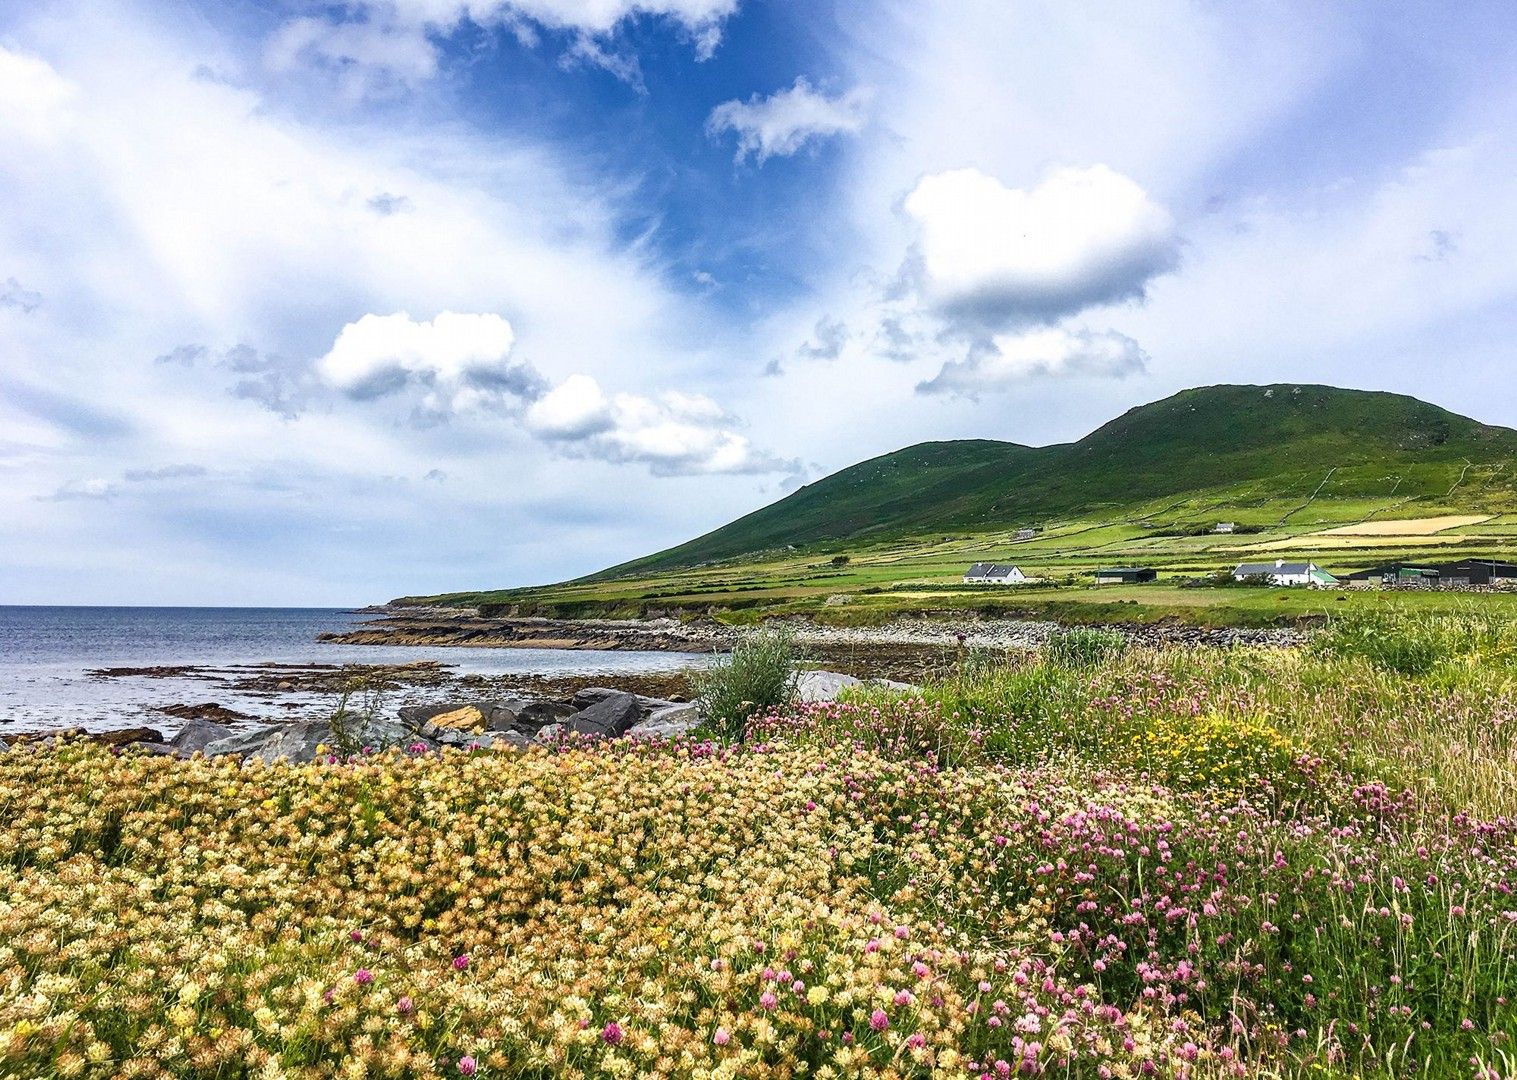 irish-coast-kerry-self-guided-leisure-cycling-holidays-saddle-skedaddle-ireland.jpg - Ireland - Highlights of Kerry - Self-Guided Leisure Cycling Holiday - Leisure Cycling